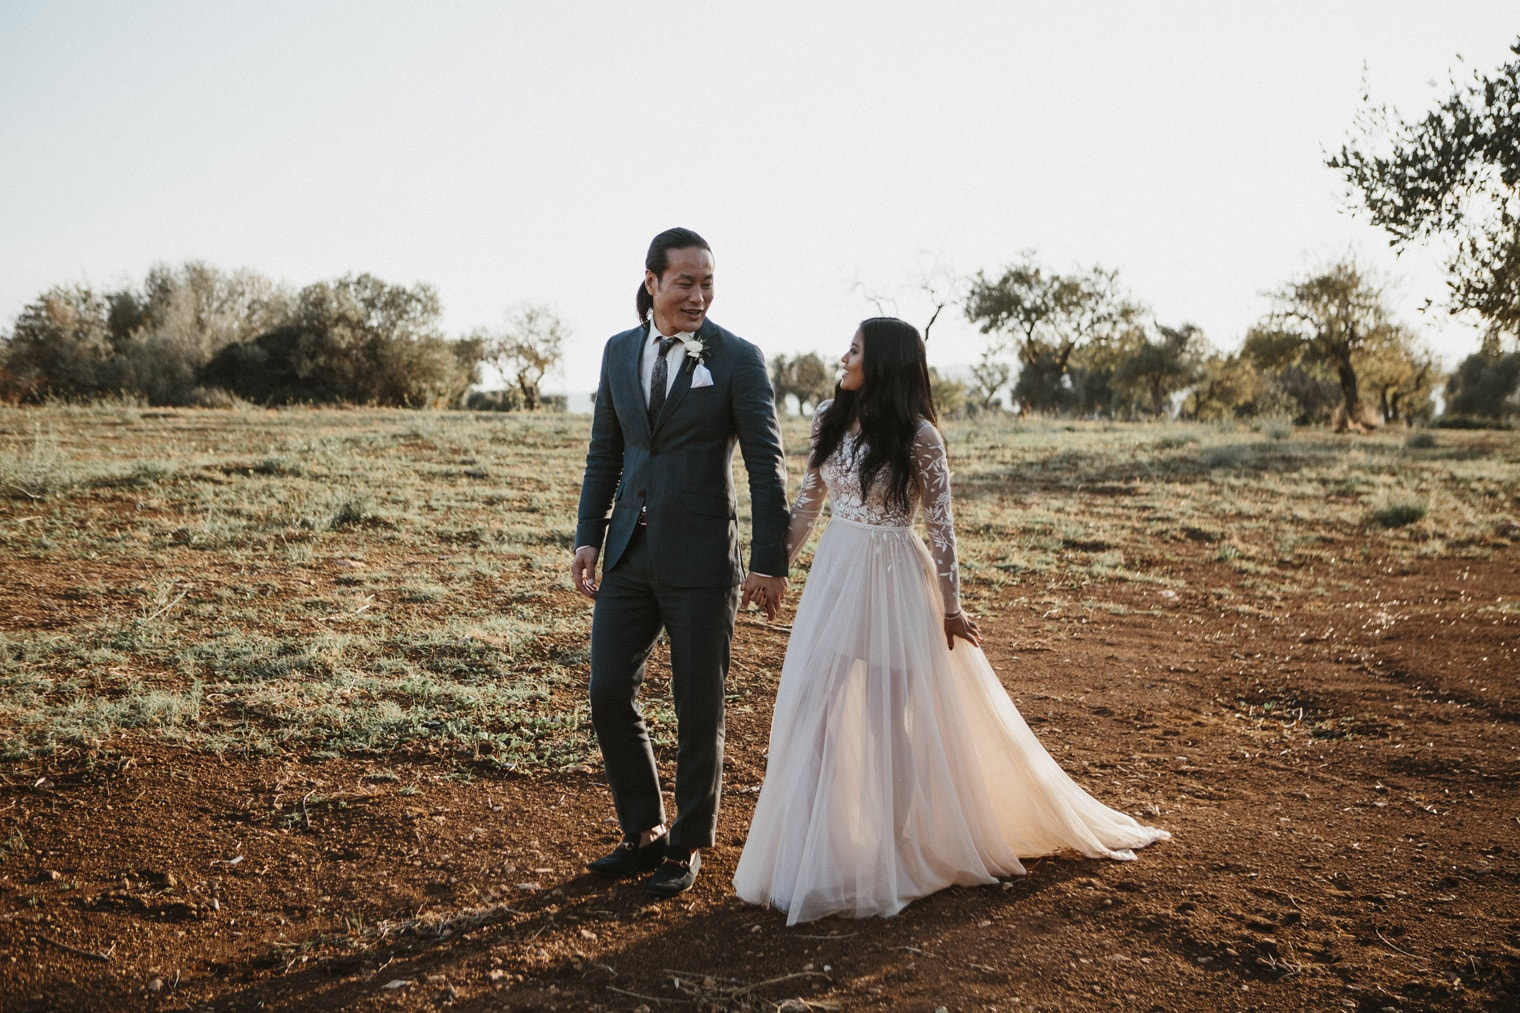 Bride and groom walking through field in Italy for their italian destination wedding